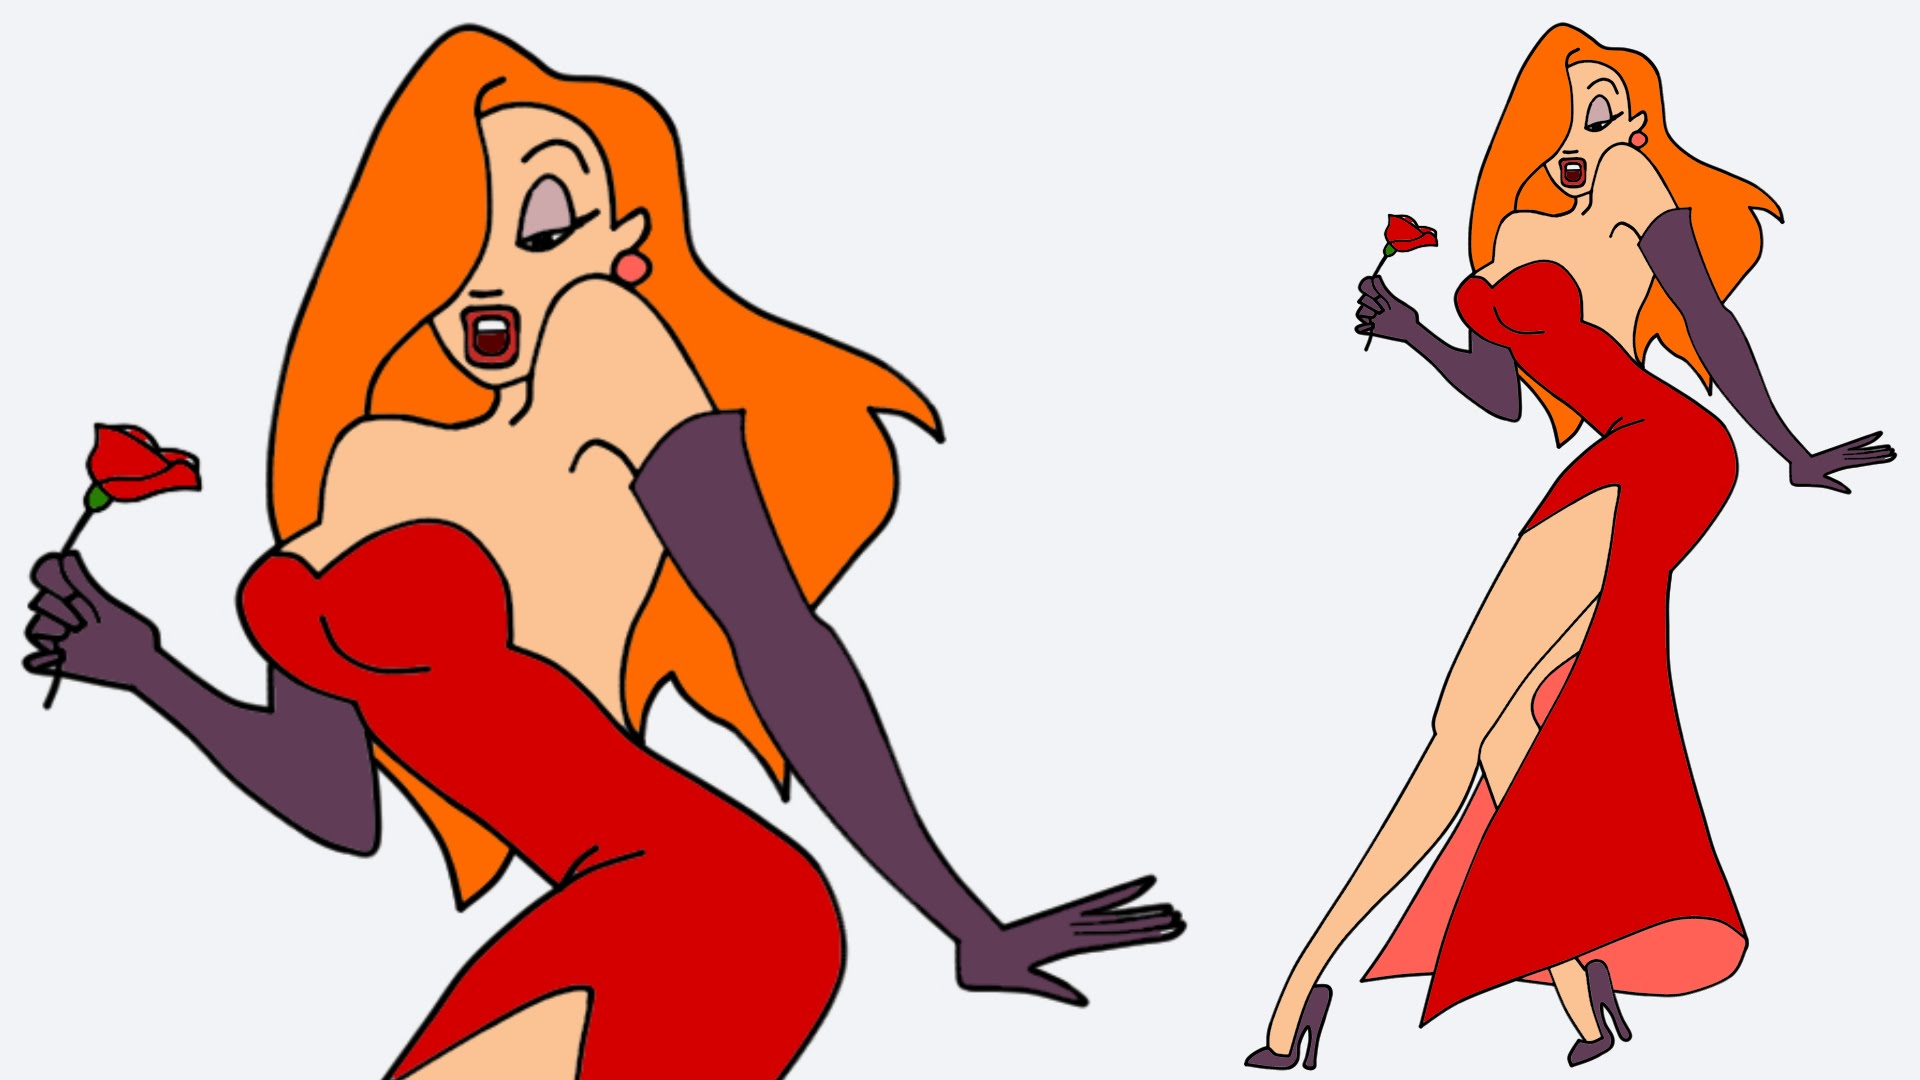 Drawn rabbit jessica rabbit Rabbit to draw Jessica Jessica